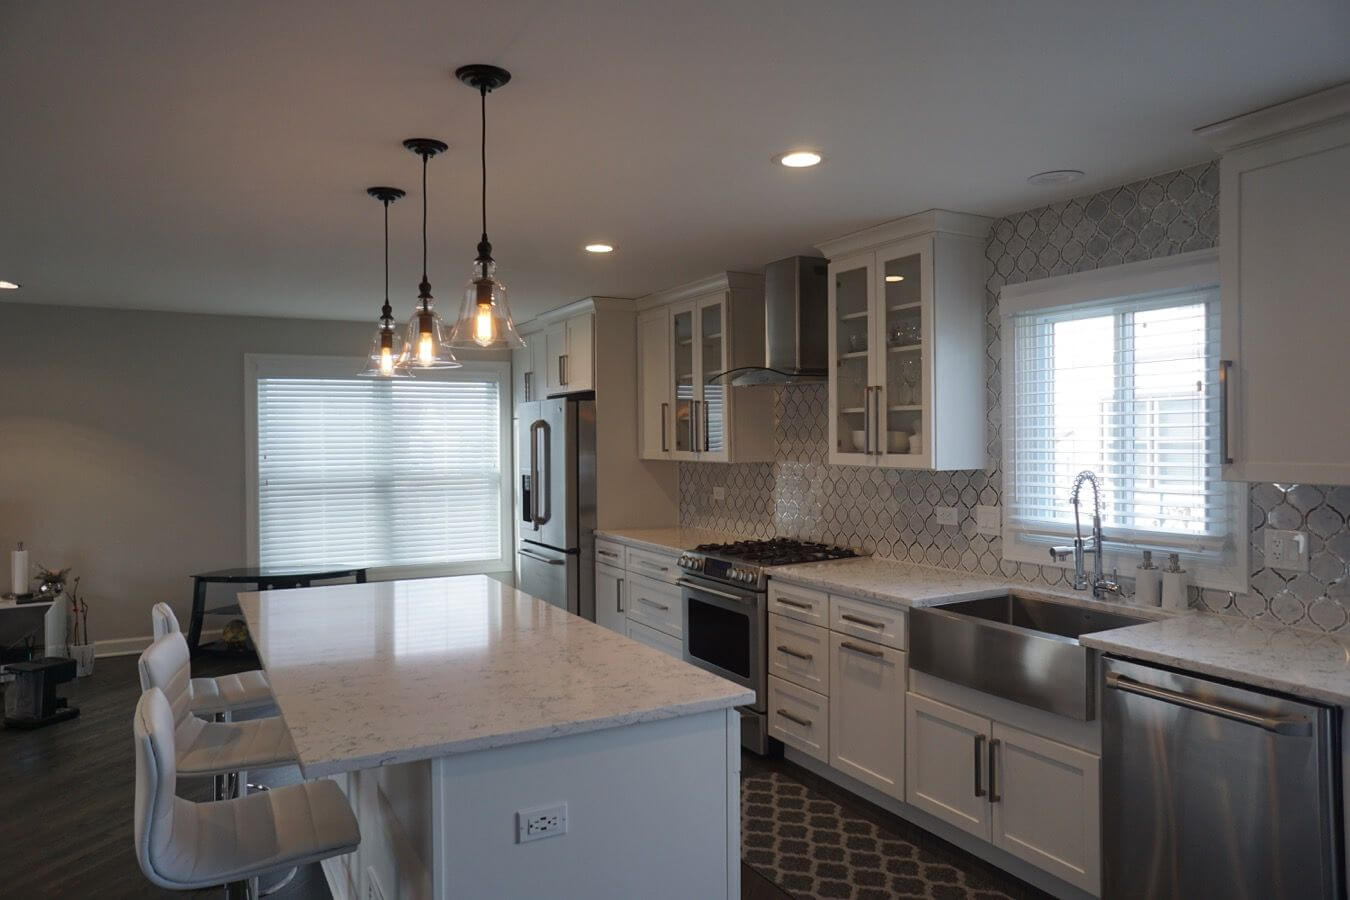 Kitchen Remodel Company and Contractor Buffalo Grove IL